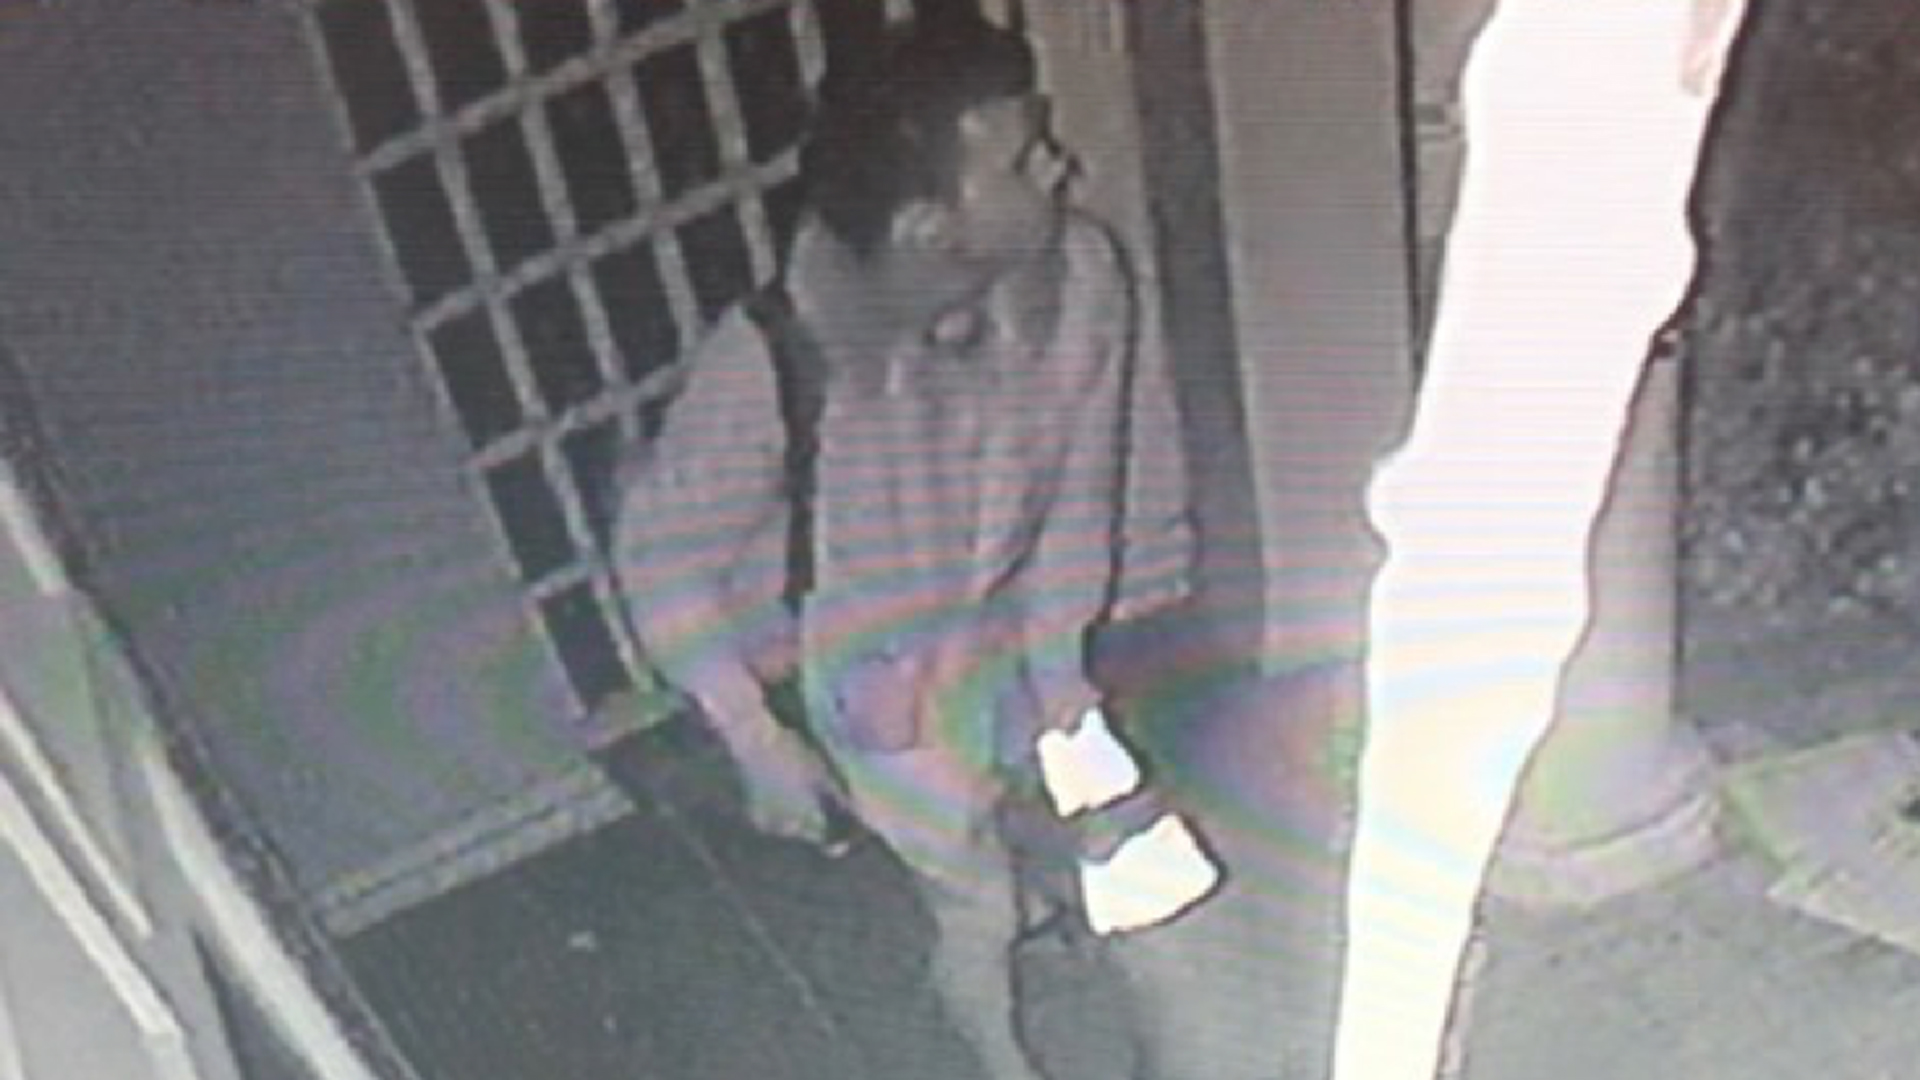 A man suspected of ransacking a Beverly Hills synagogue is seen on surveillance video on Dec. 14, 2019. (Credit: Beverly Hills police)